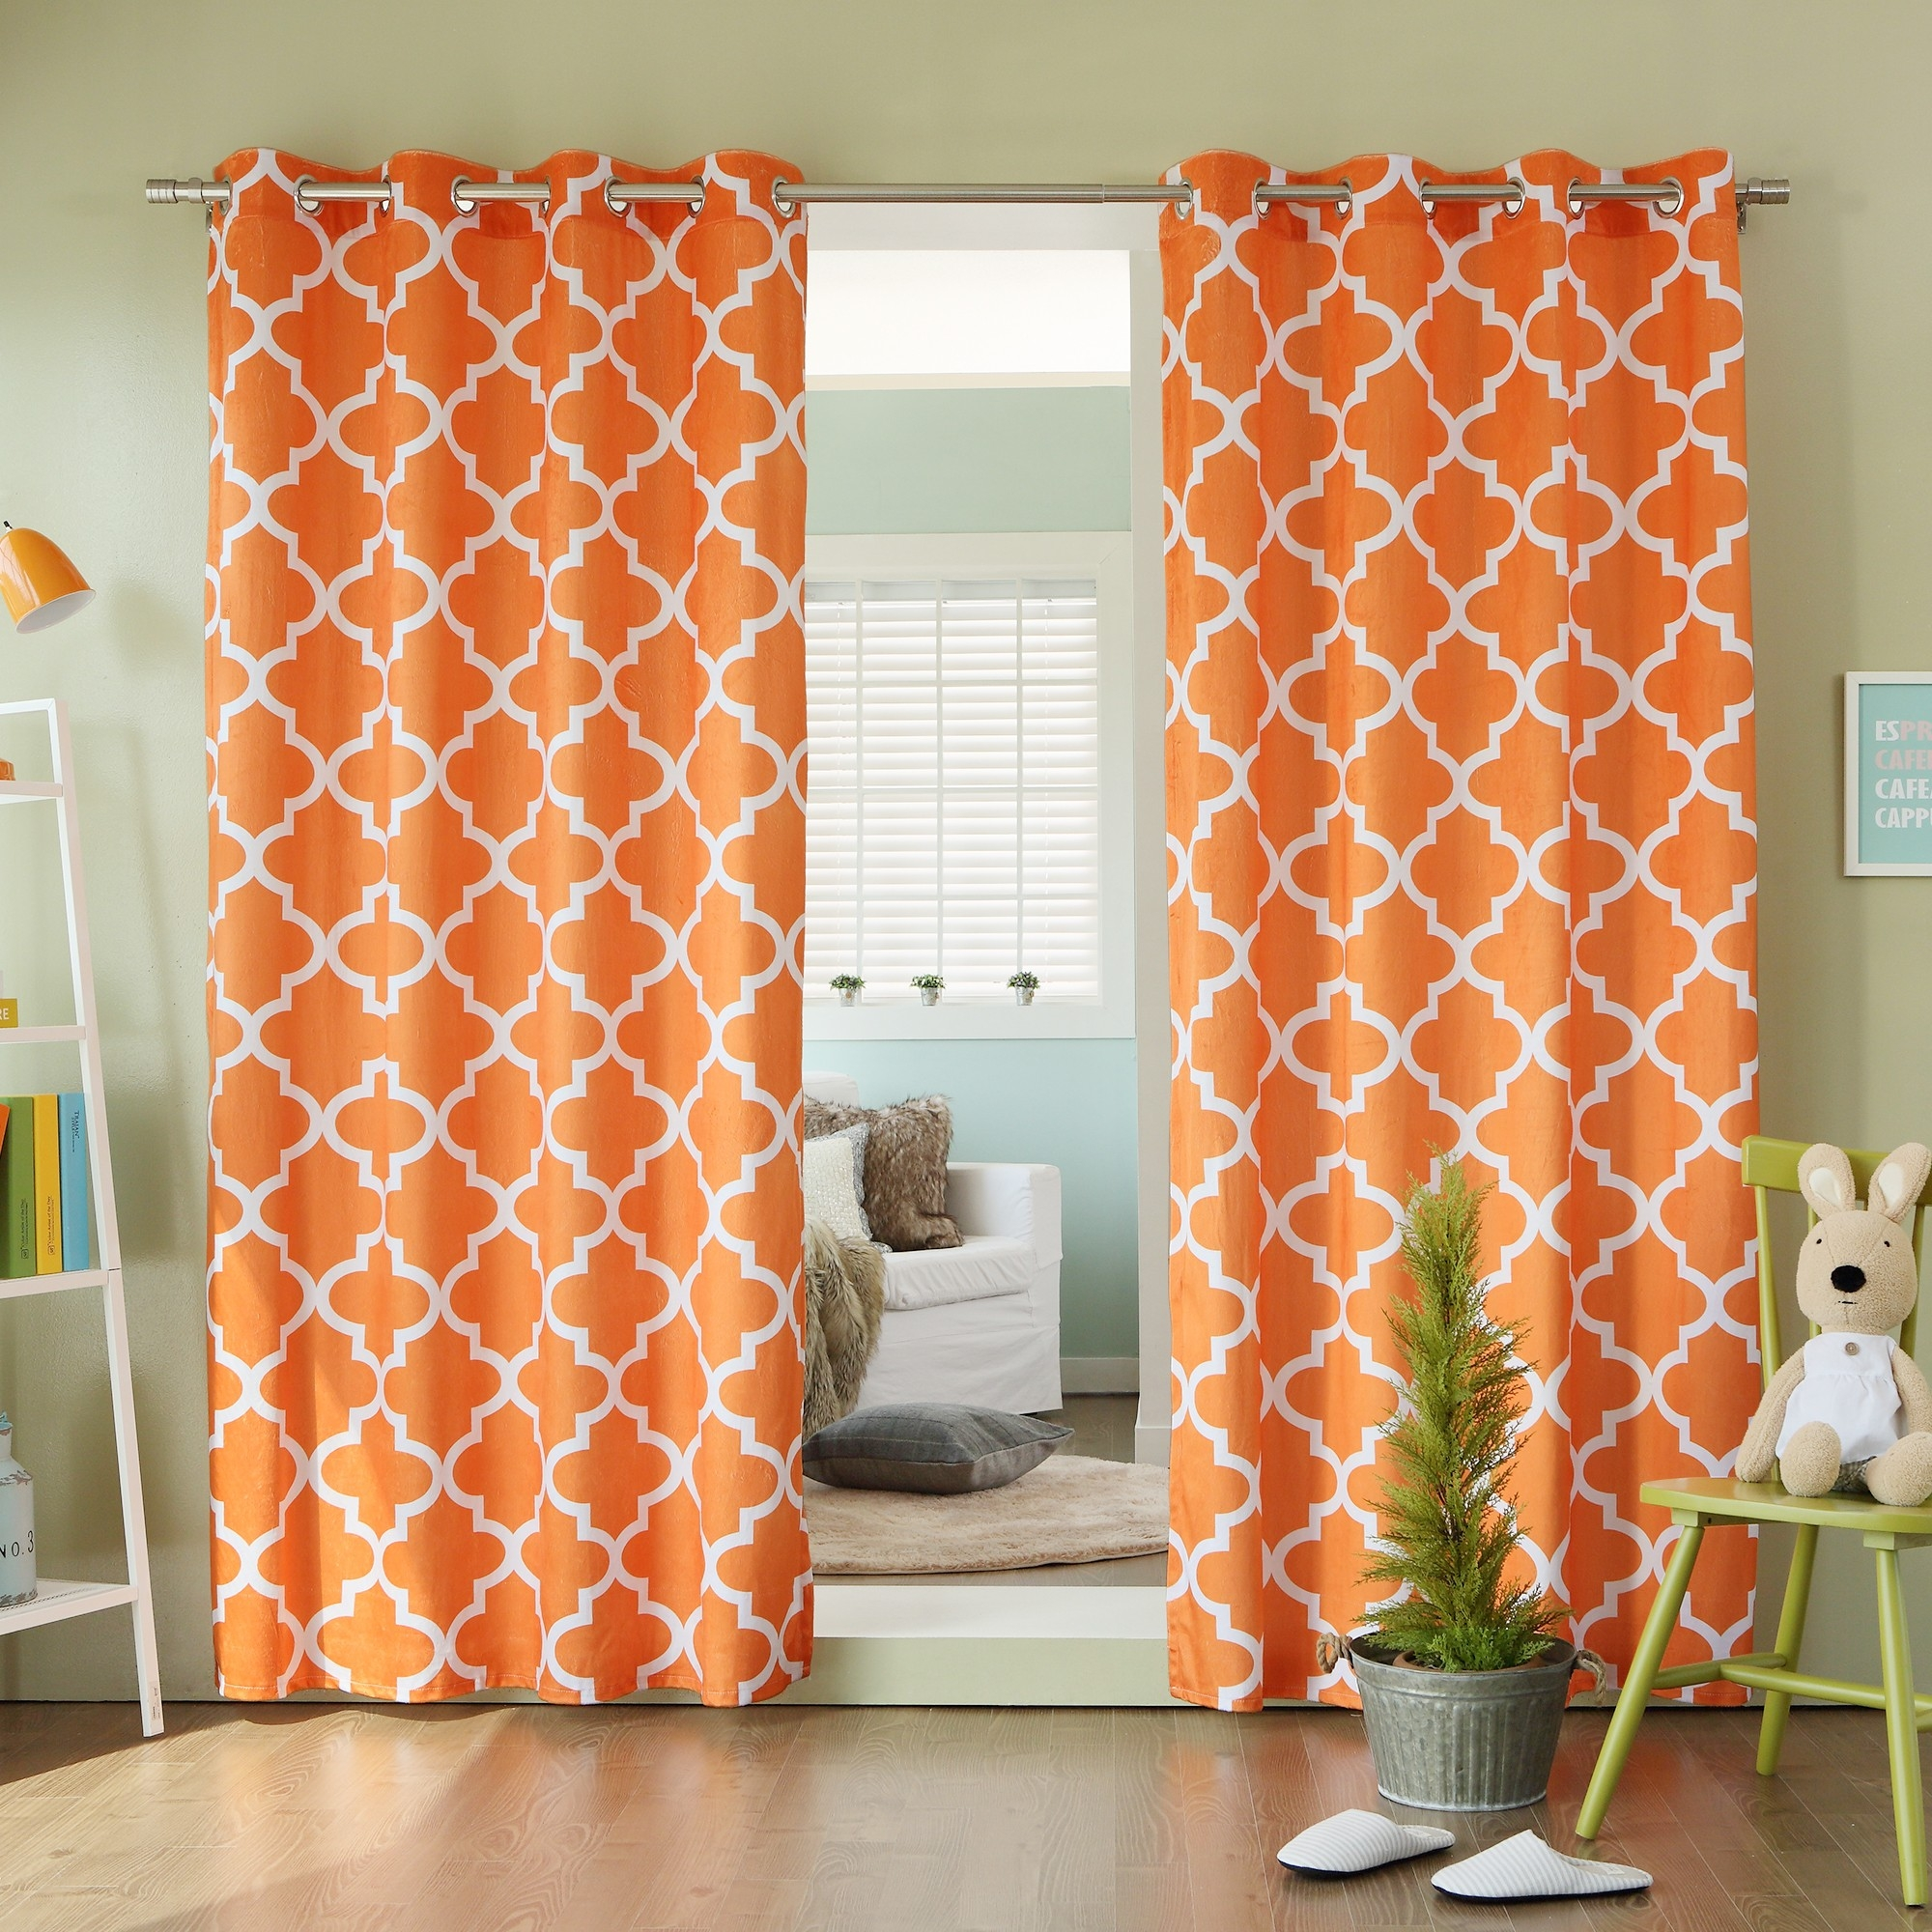 Orange And Aqua Curtains Inspiration Decoration Il Fullxfull Throughout Moroccan Print Curtains (Image 14 of 15)